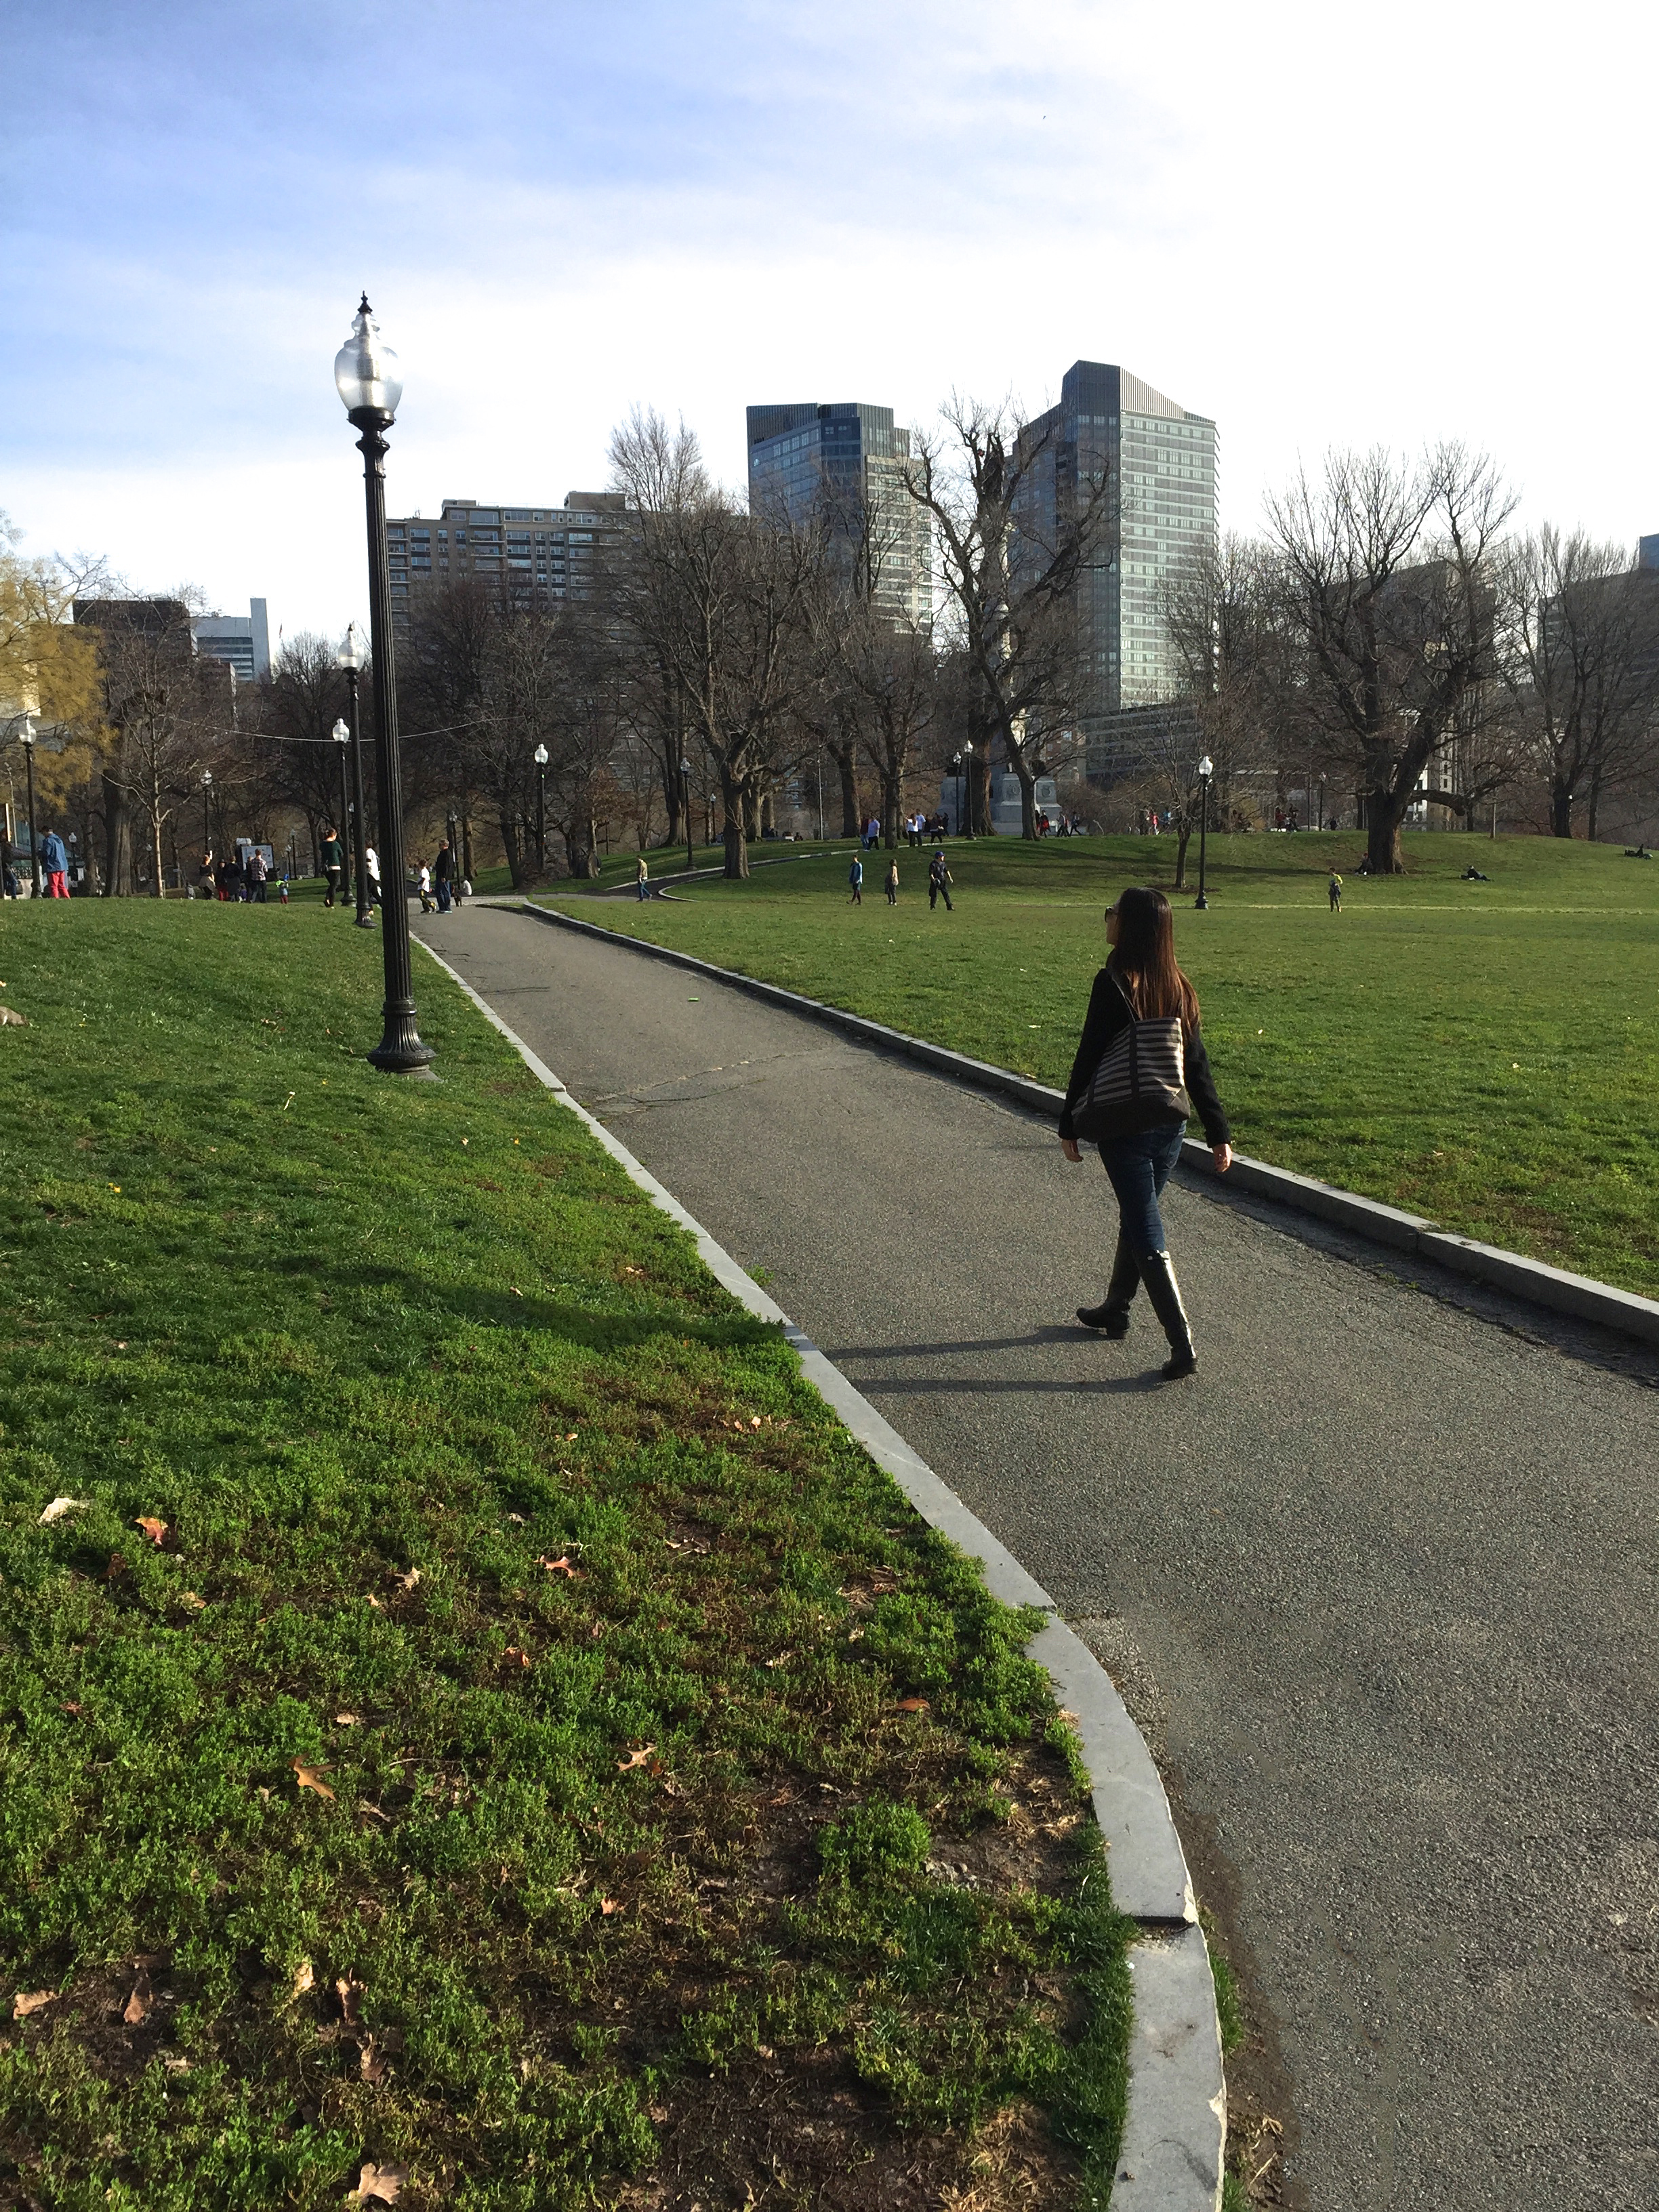 Afternoon strolls at Boston Common 🍃